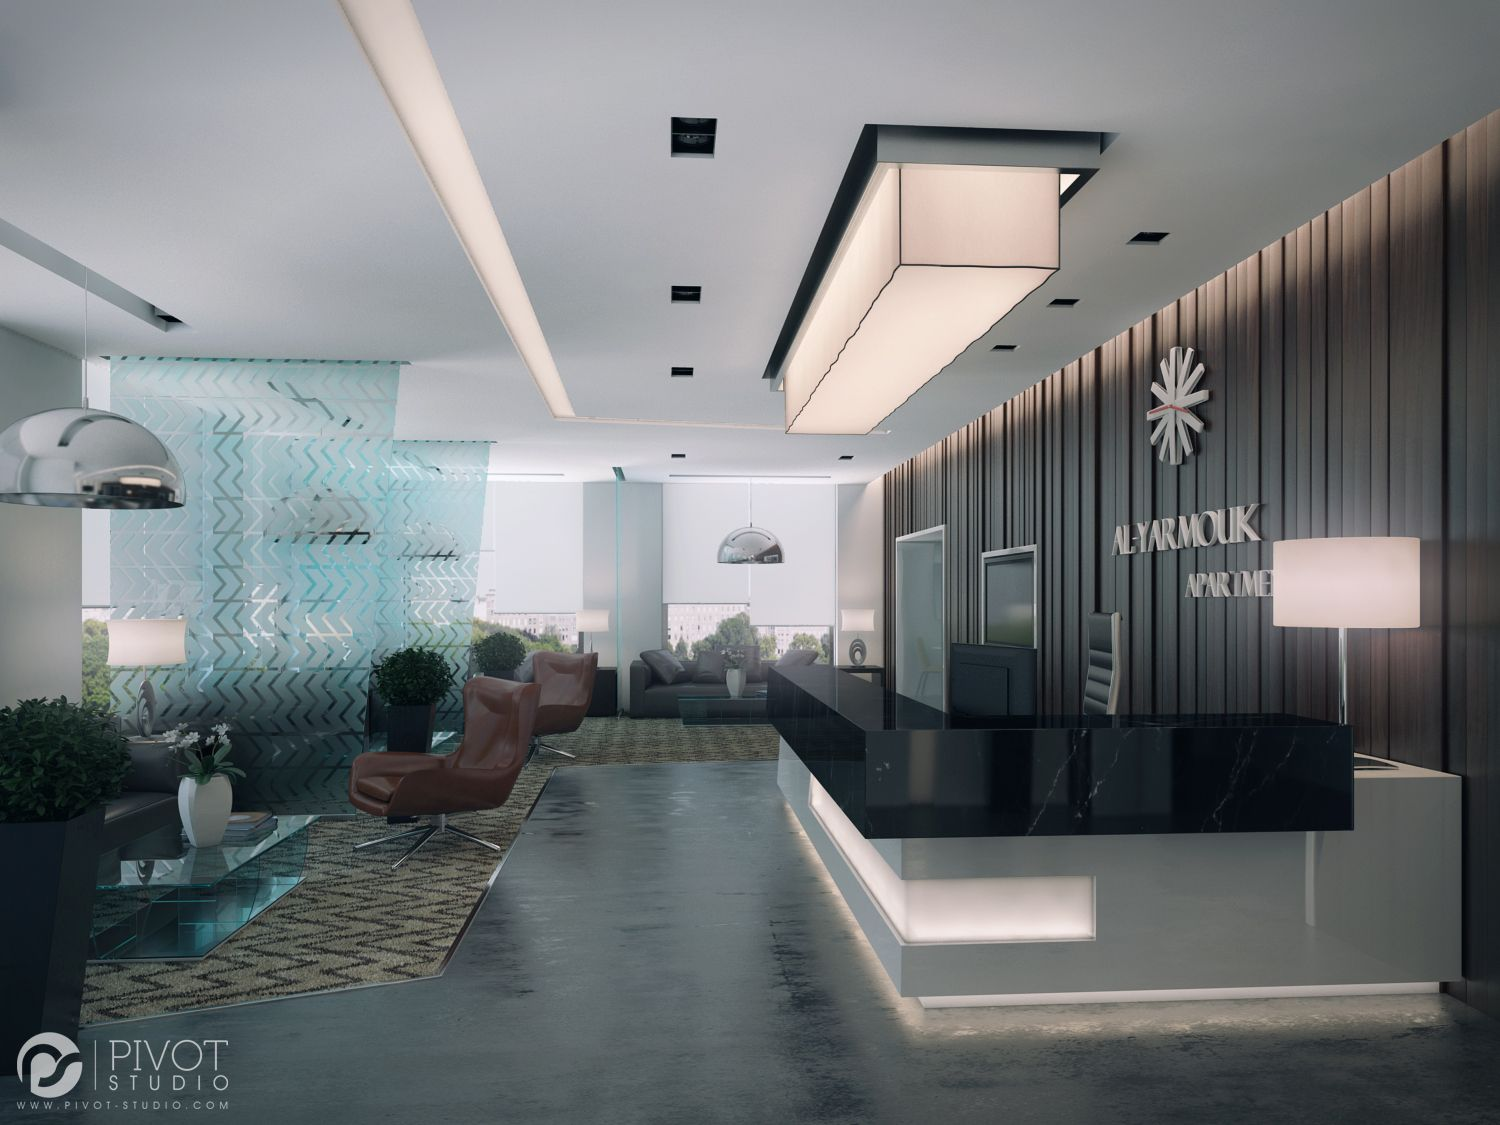 Office reception interior designs - Interior Design And 3d Visuals Of Apartments Building Reception Located In Al Yarmouq Area